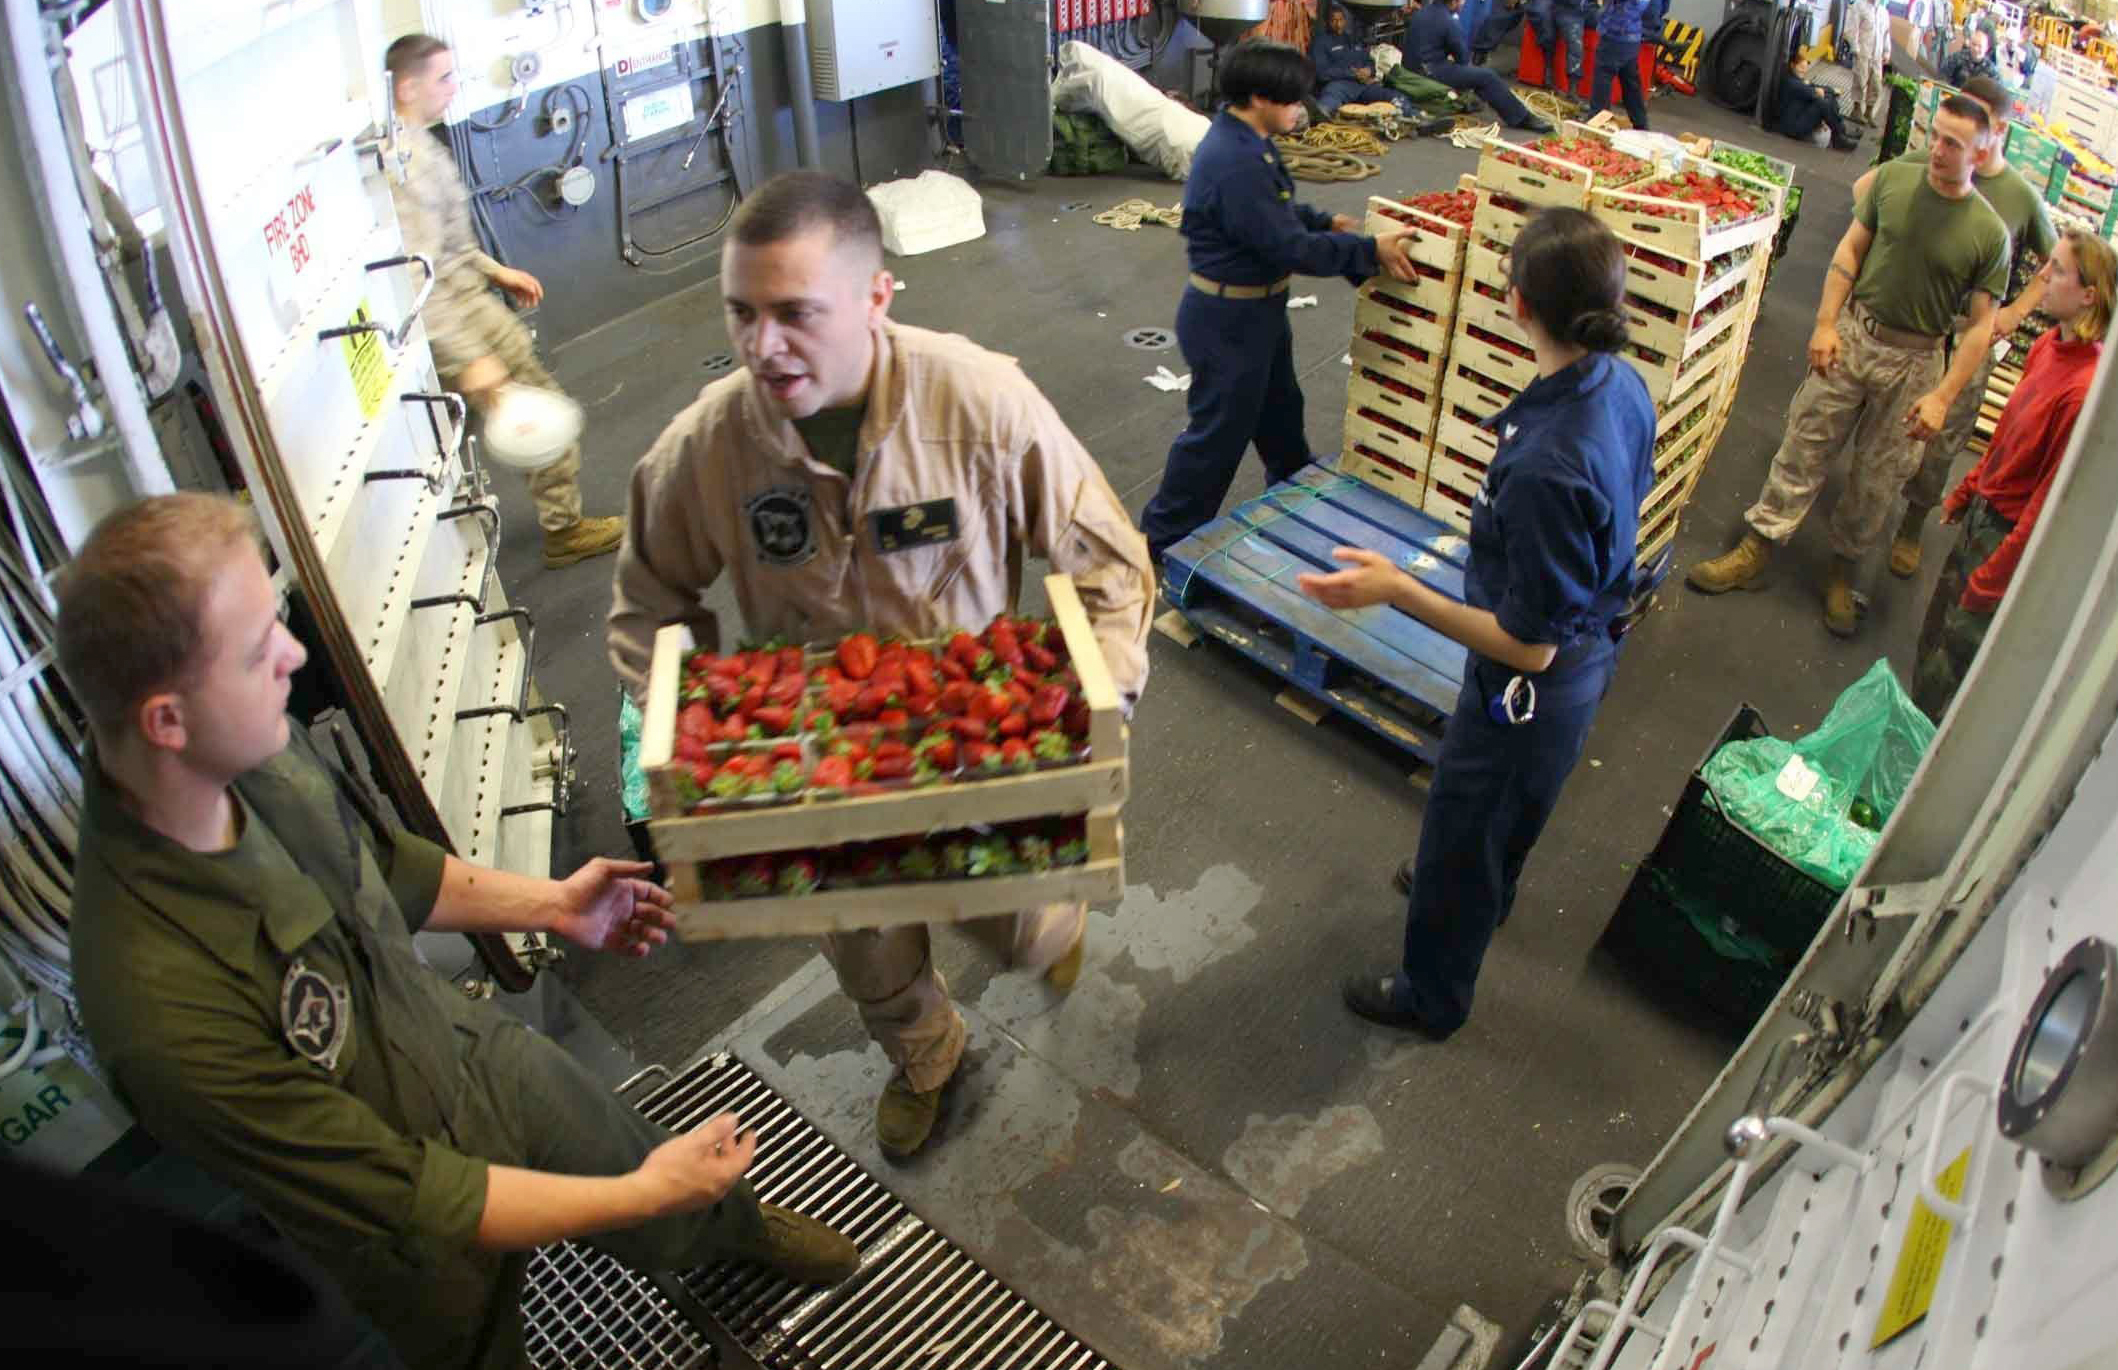 Unloading fresh fruit and vegetable